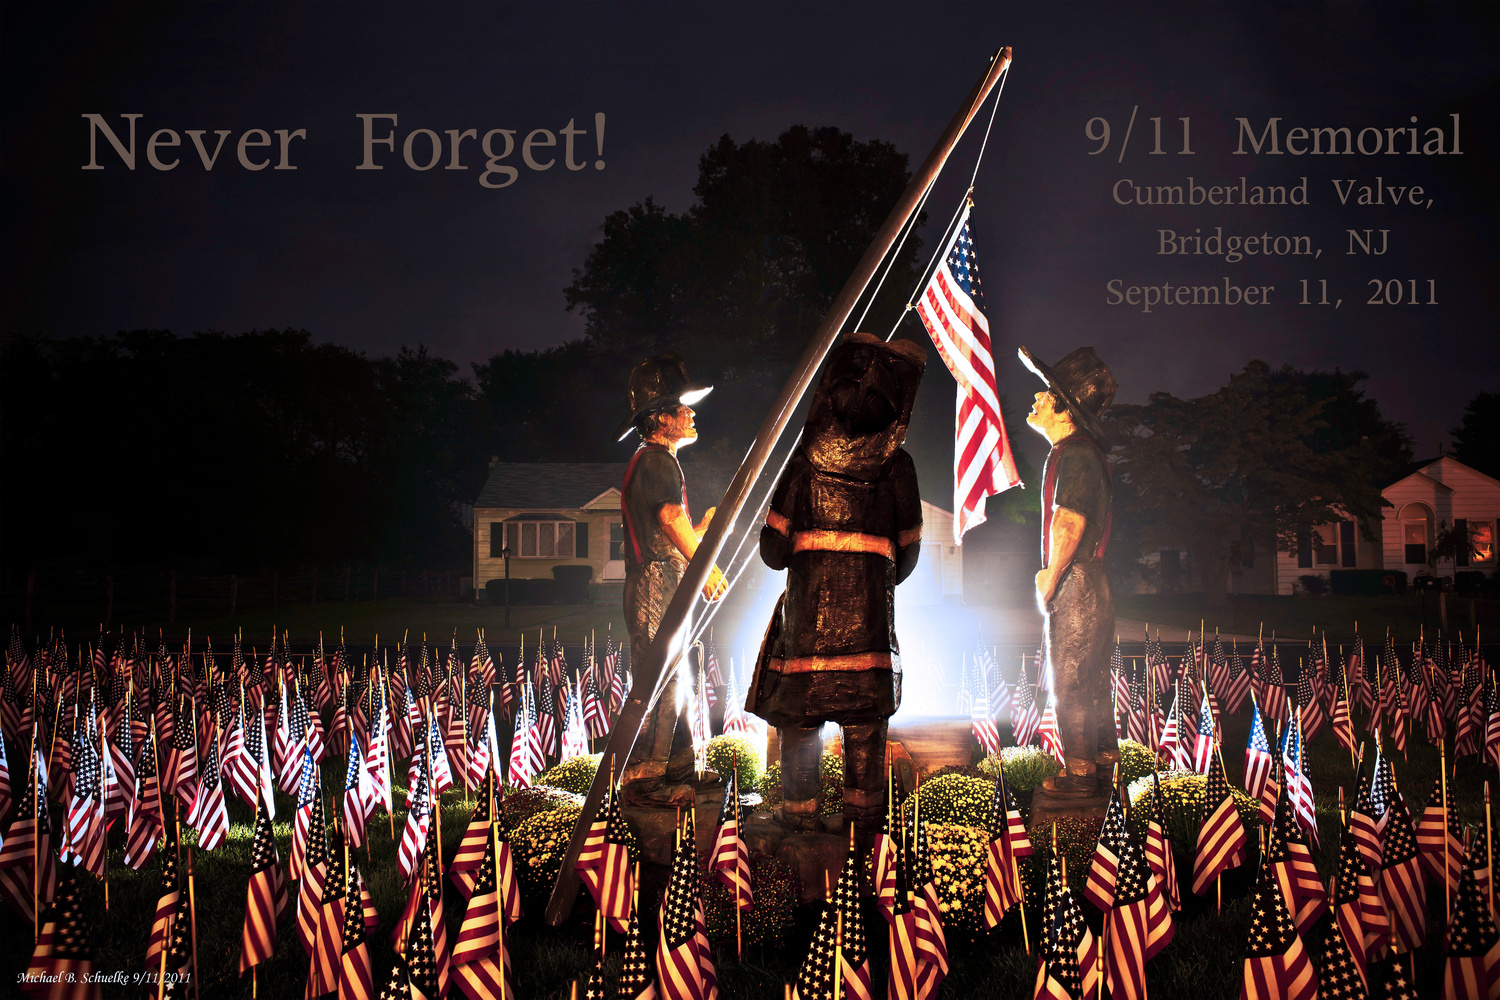 Never Forget by Michael B. Schuelke